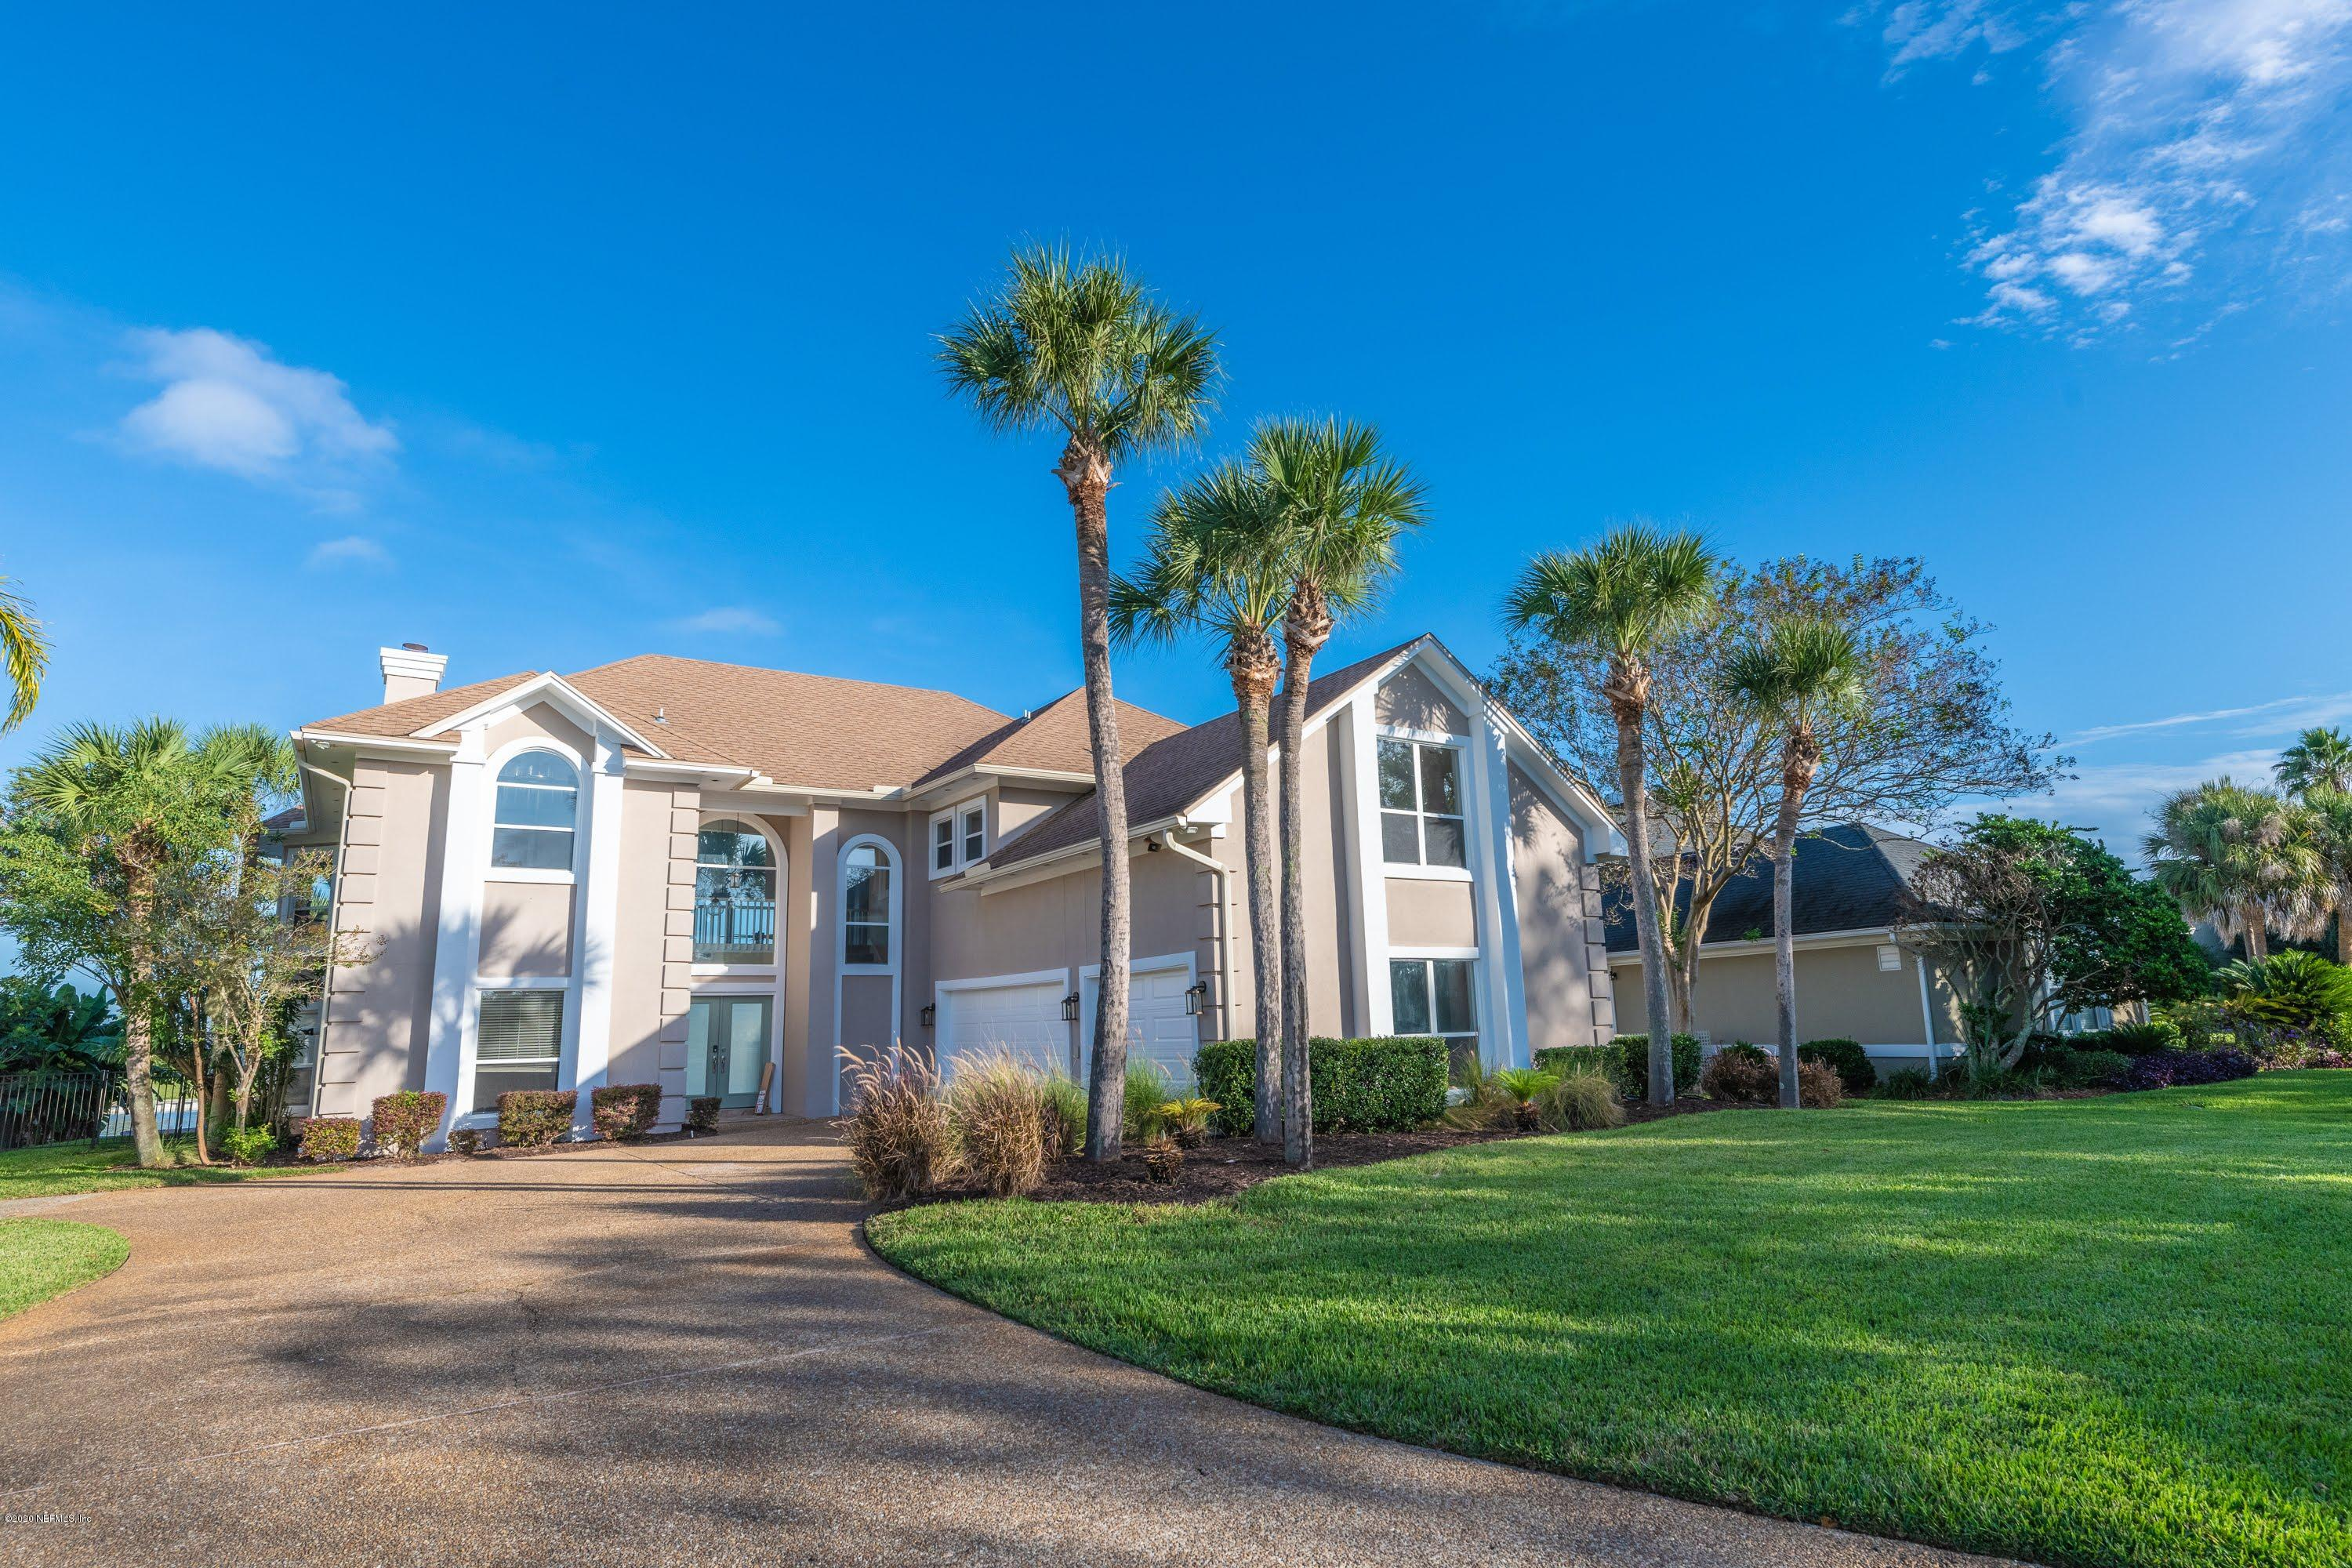 4425 HARBOUR ISLAND, JACKSONVILLE, FLORIDA 32225, 4 Bedrooms Bedrooms, ,3 BathroomsBathrooms,Residential,For sale,HARBOUR ISLAND,1050227